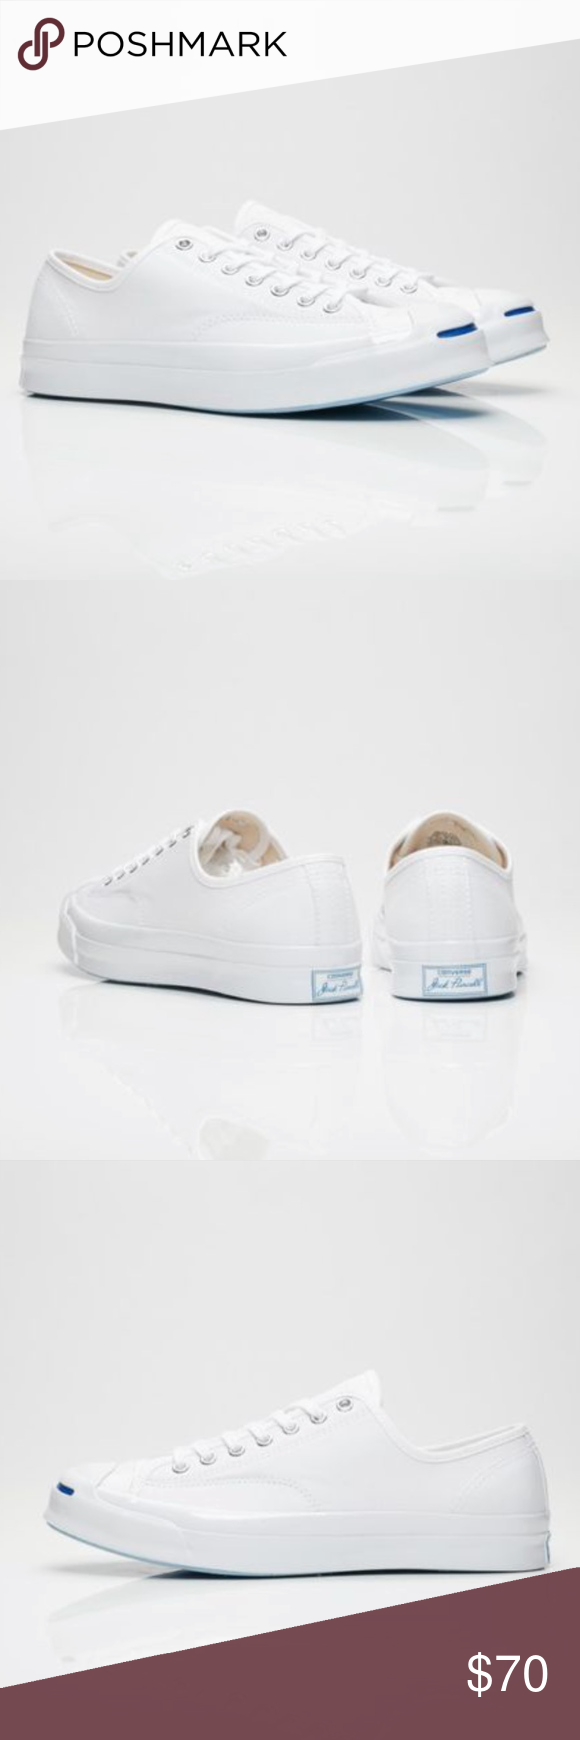 ba88edc2251d Converse JACK PURCELL SIGNATURE OX Men s Low Top The Converse Jack Purcell  Signature OX is a